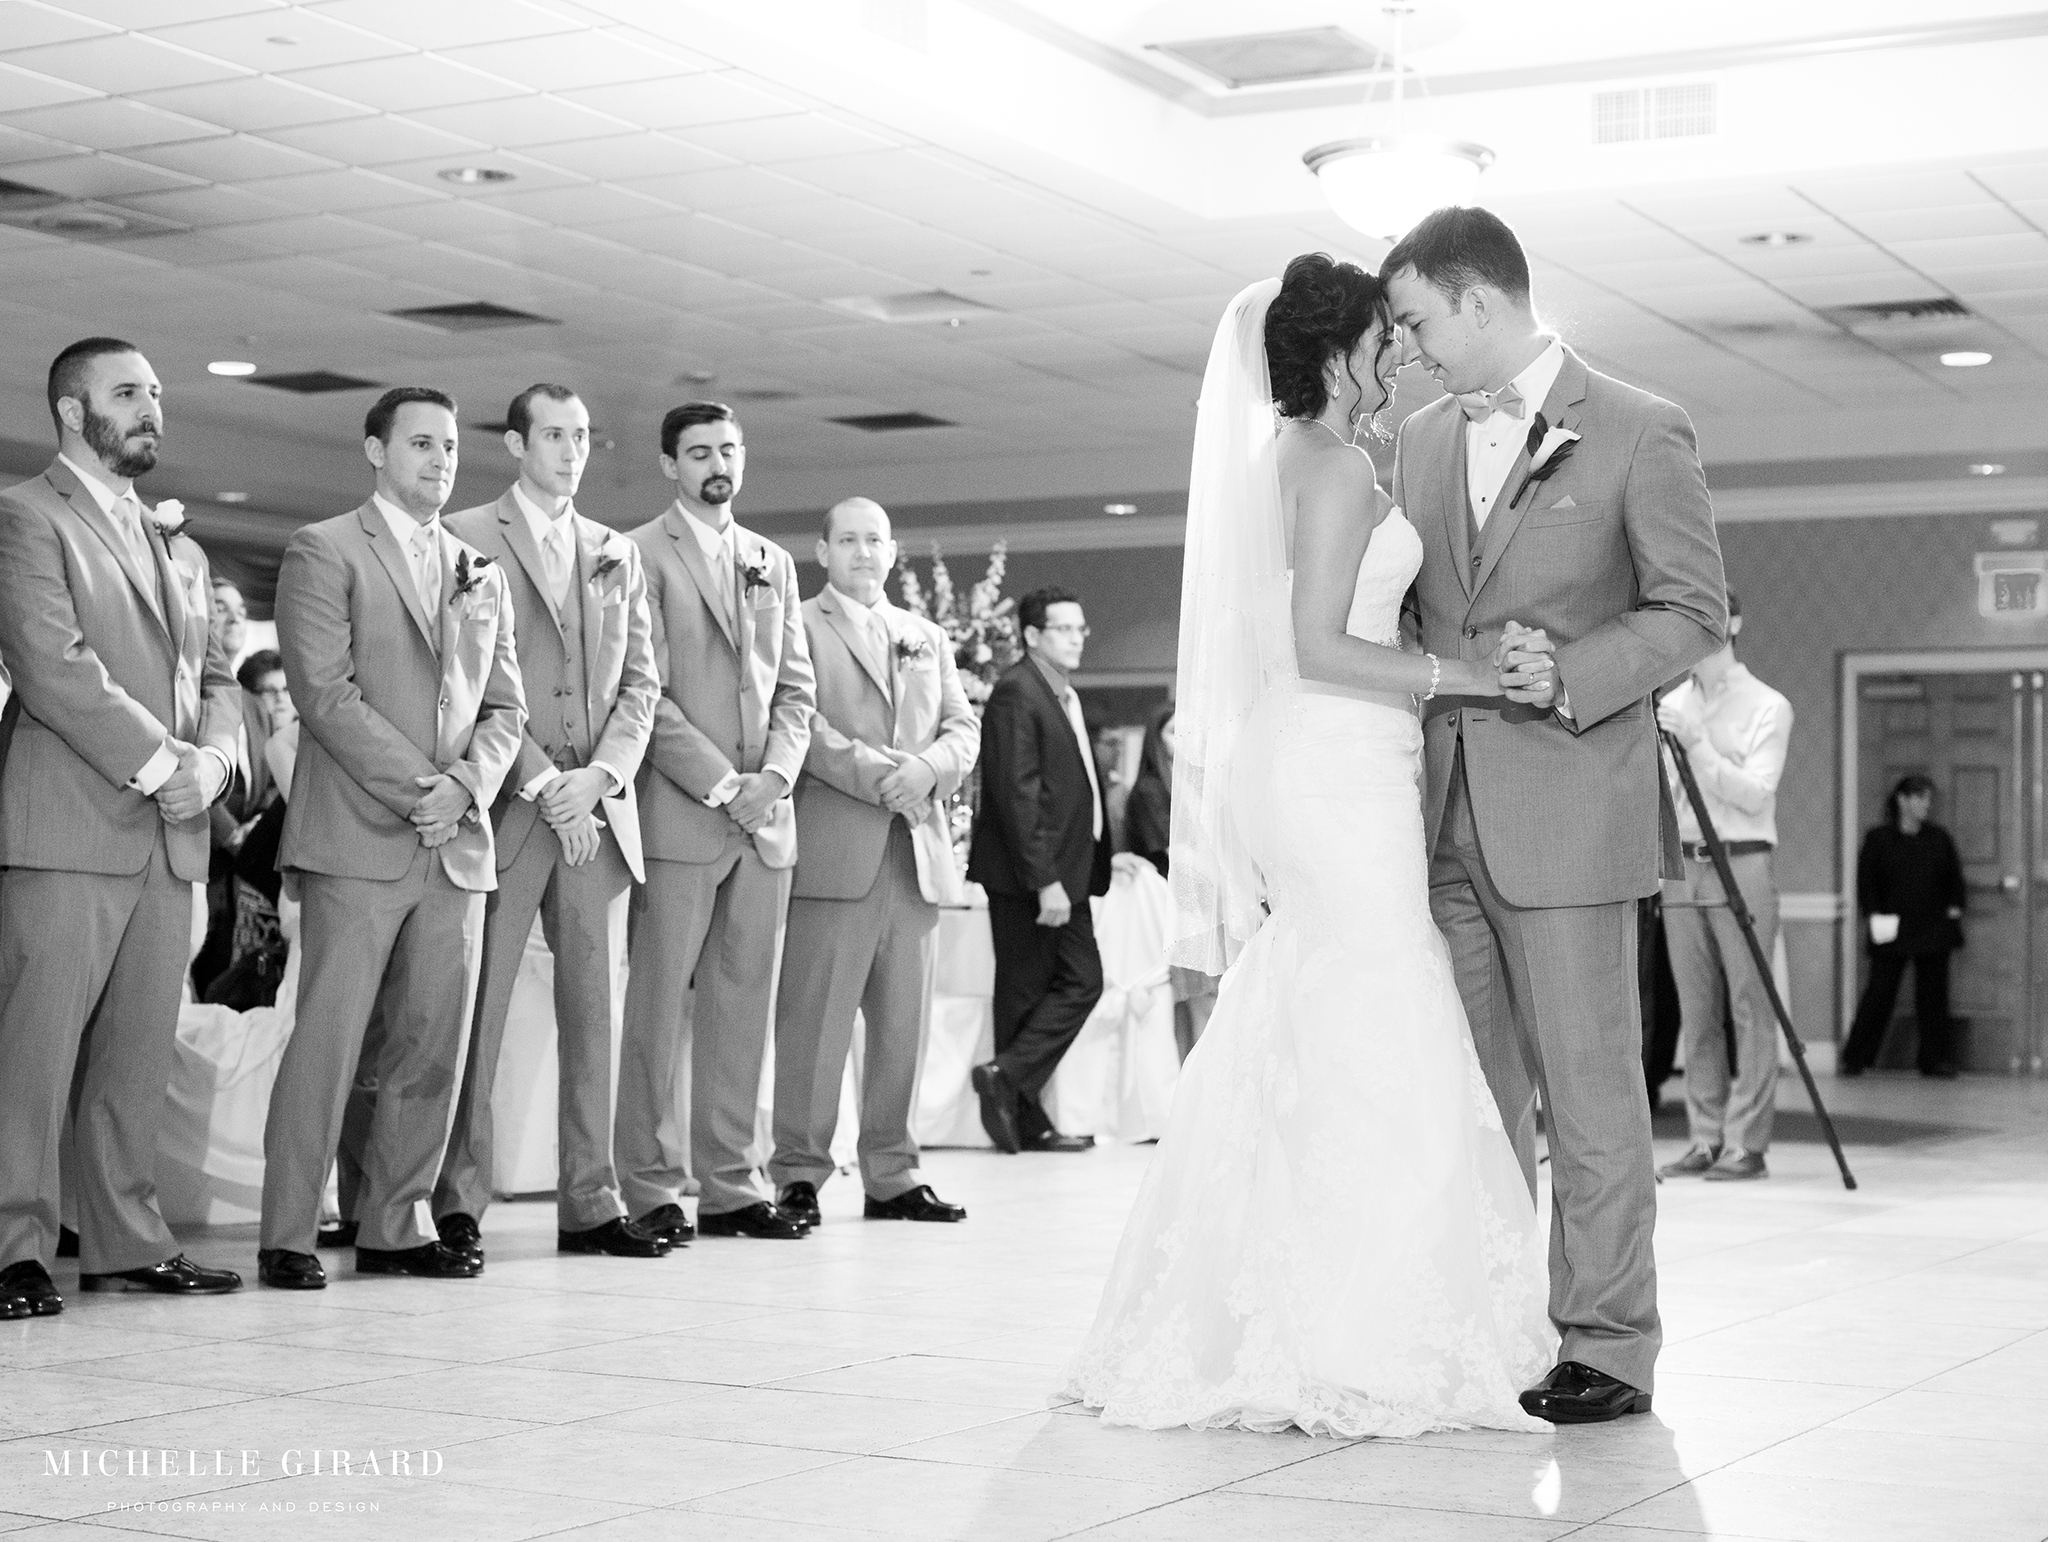 TraditionalLudlowMAWedding_MichelleGirardPhotography04.jpg